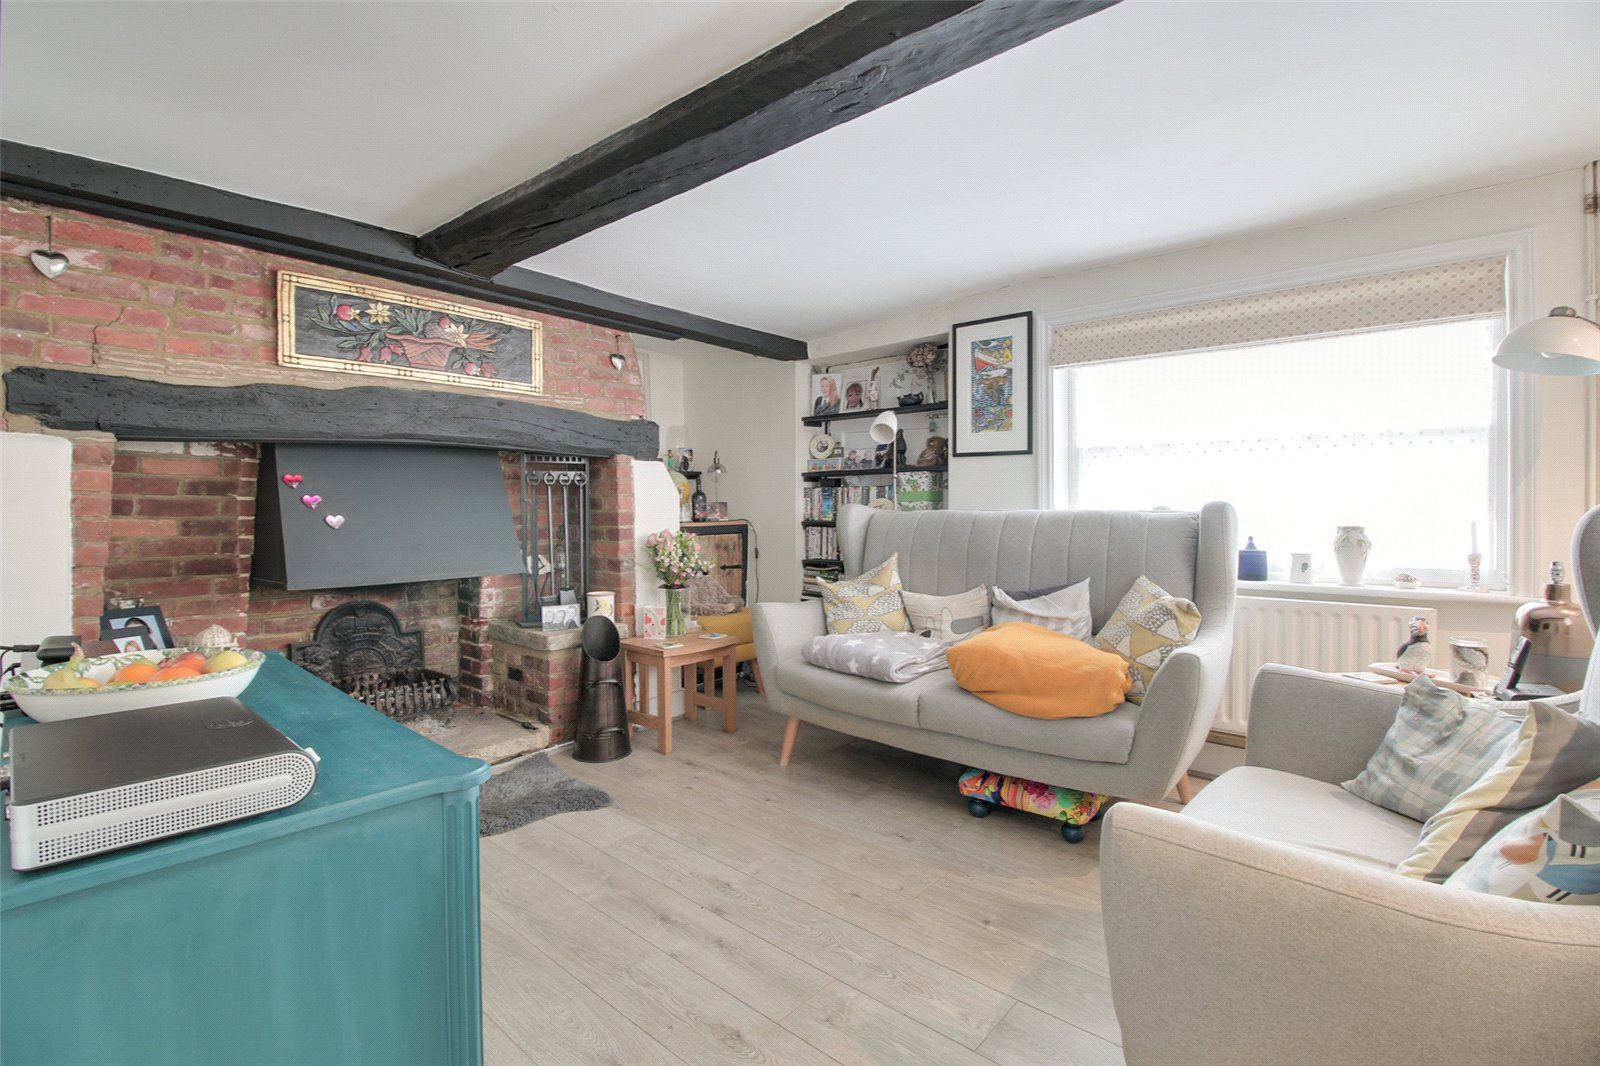 2 bed house for sale in Maidstone Road, Lenham, ME17